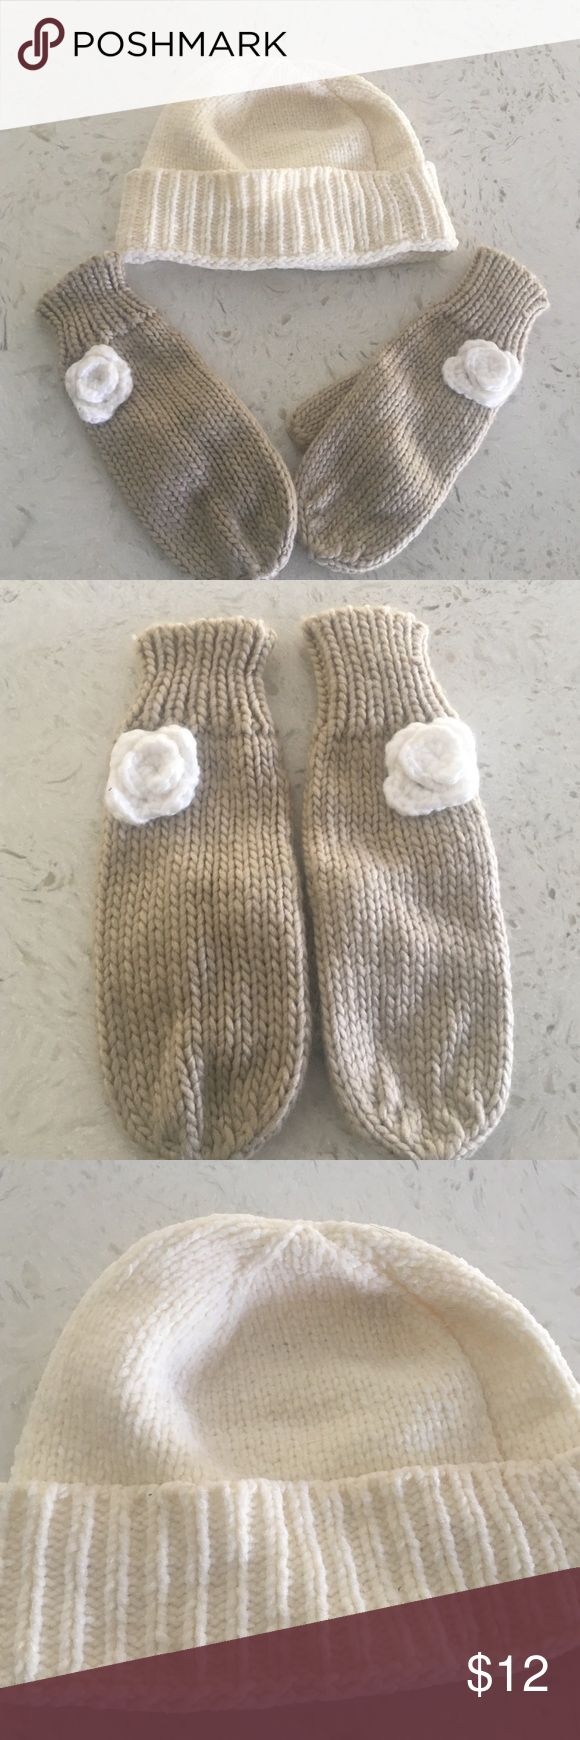 Tan and Beige Mittens and Beanie Soft beanie and new never worn mittens. Accessories Gloves & Mittens